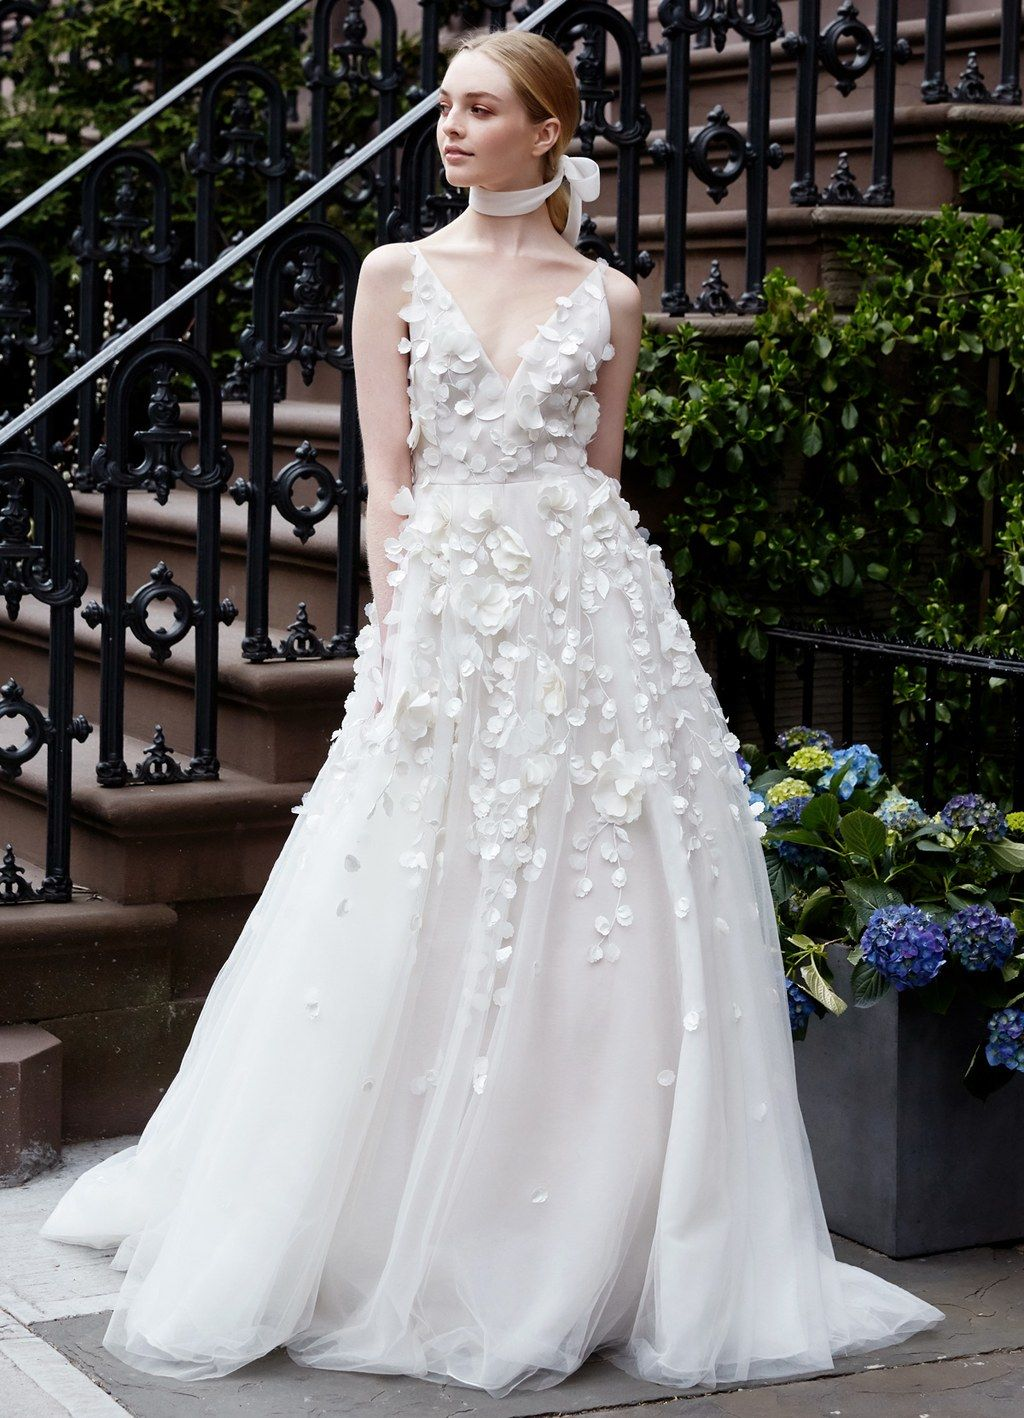 d56d44eb8 7 Bridal Fashion Trends That Should Be on Your Radar in 2019 ...